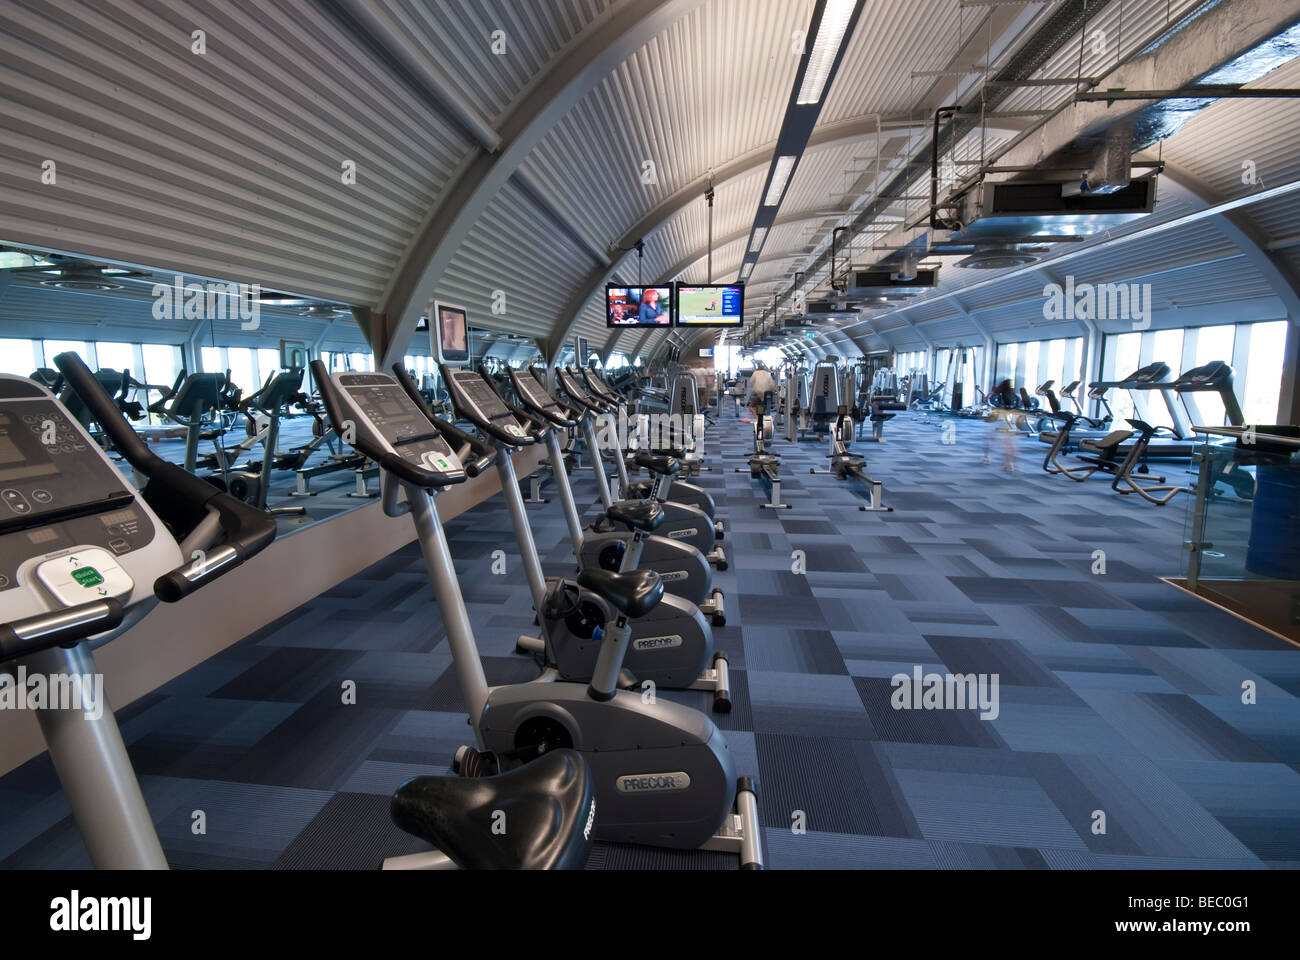 Fitness suite for work outs at the Mountbatten centre - Stock Image